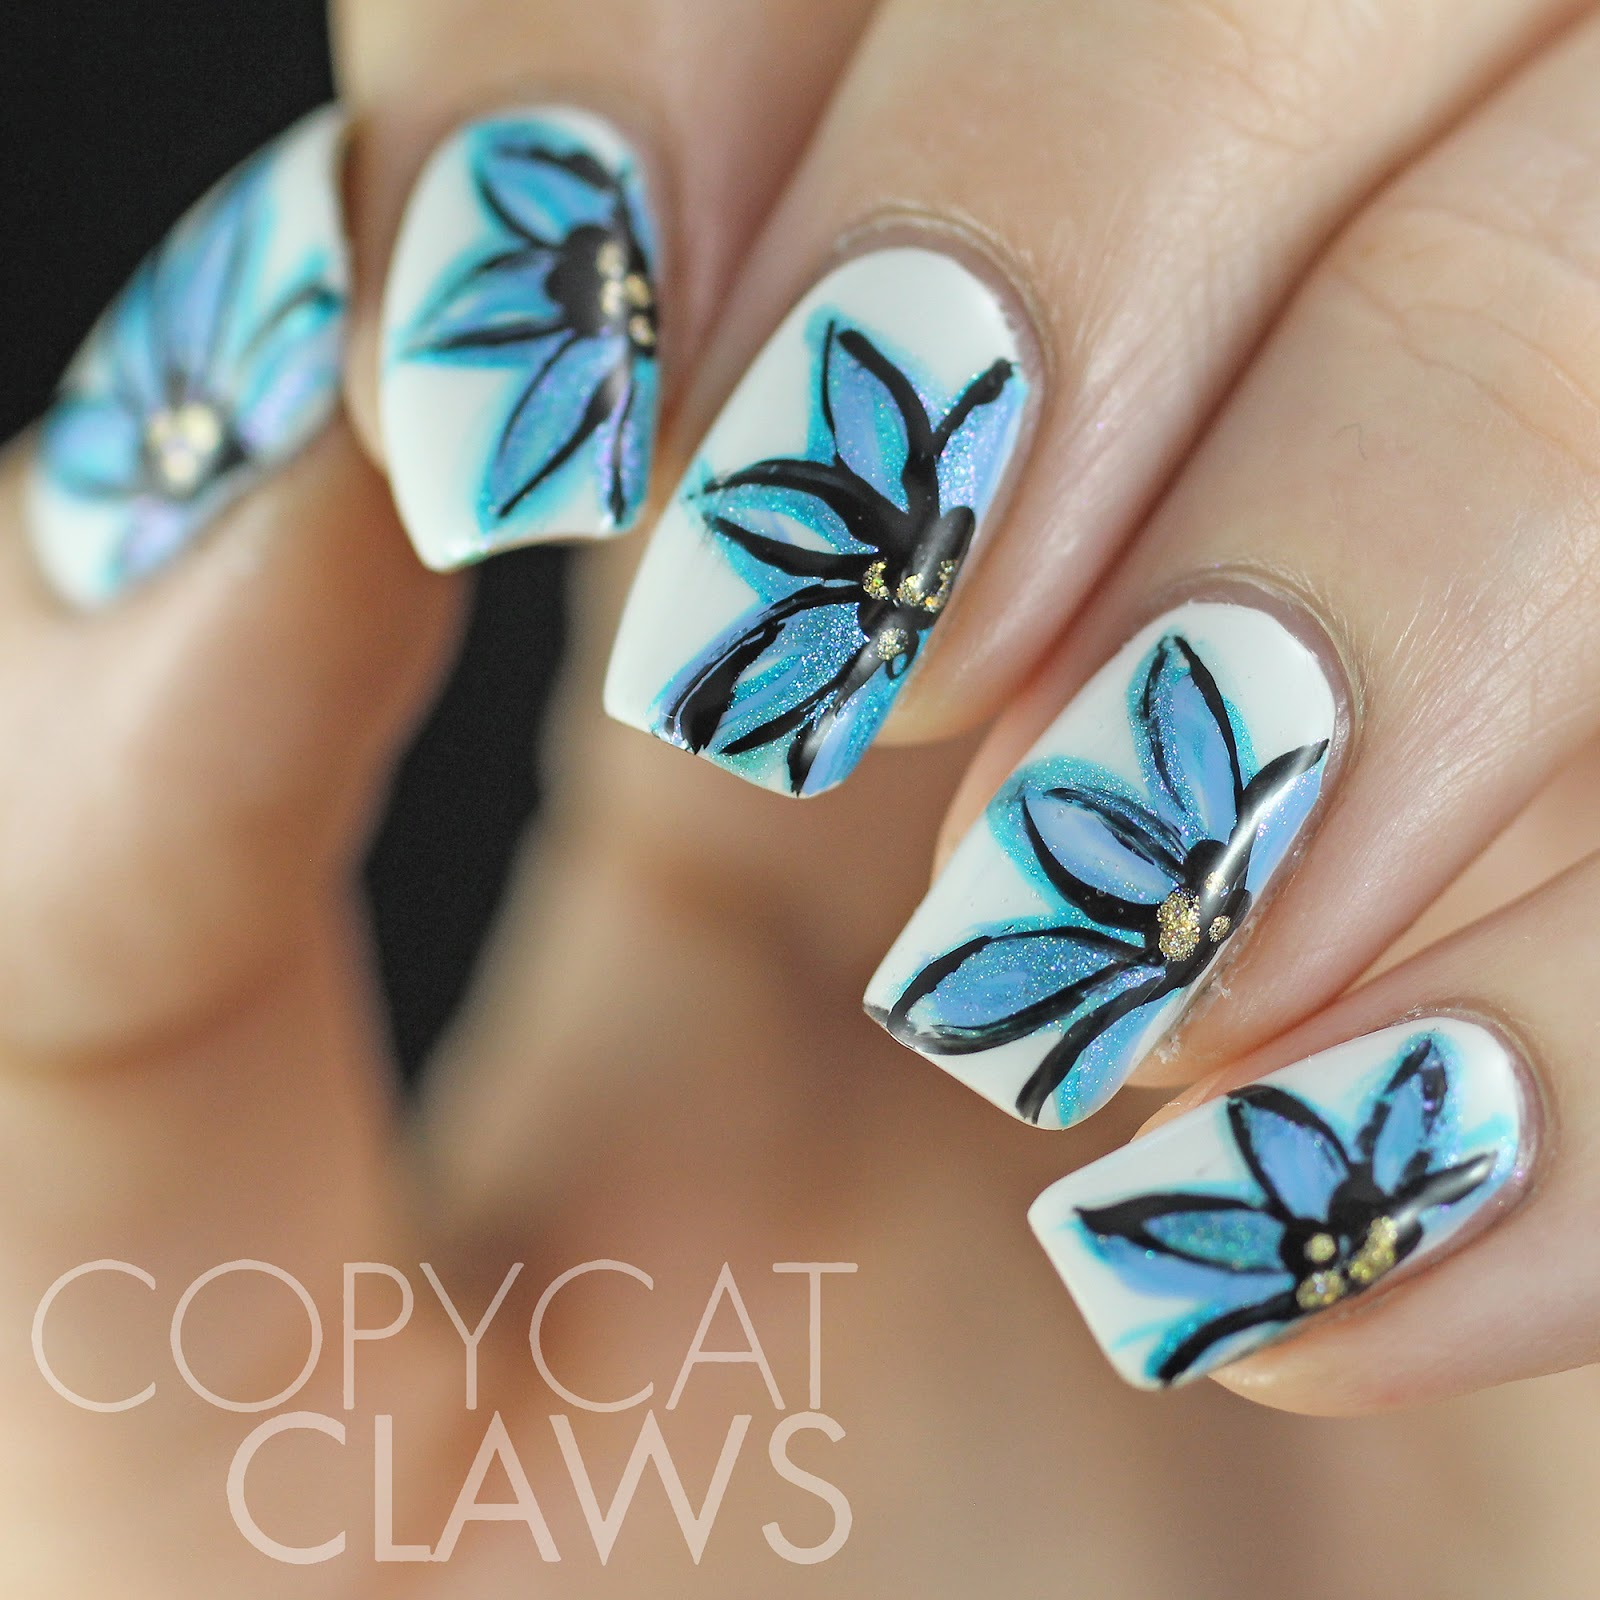 Copycat Claws Blue Color Block Nail Art: Copycat Claws: Freehand Blue Flower Nail Art